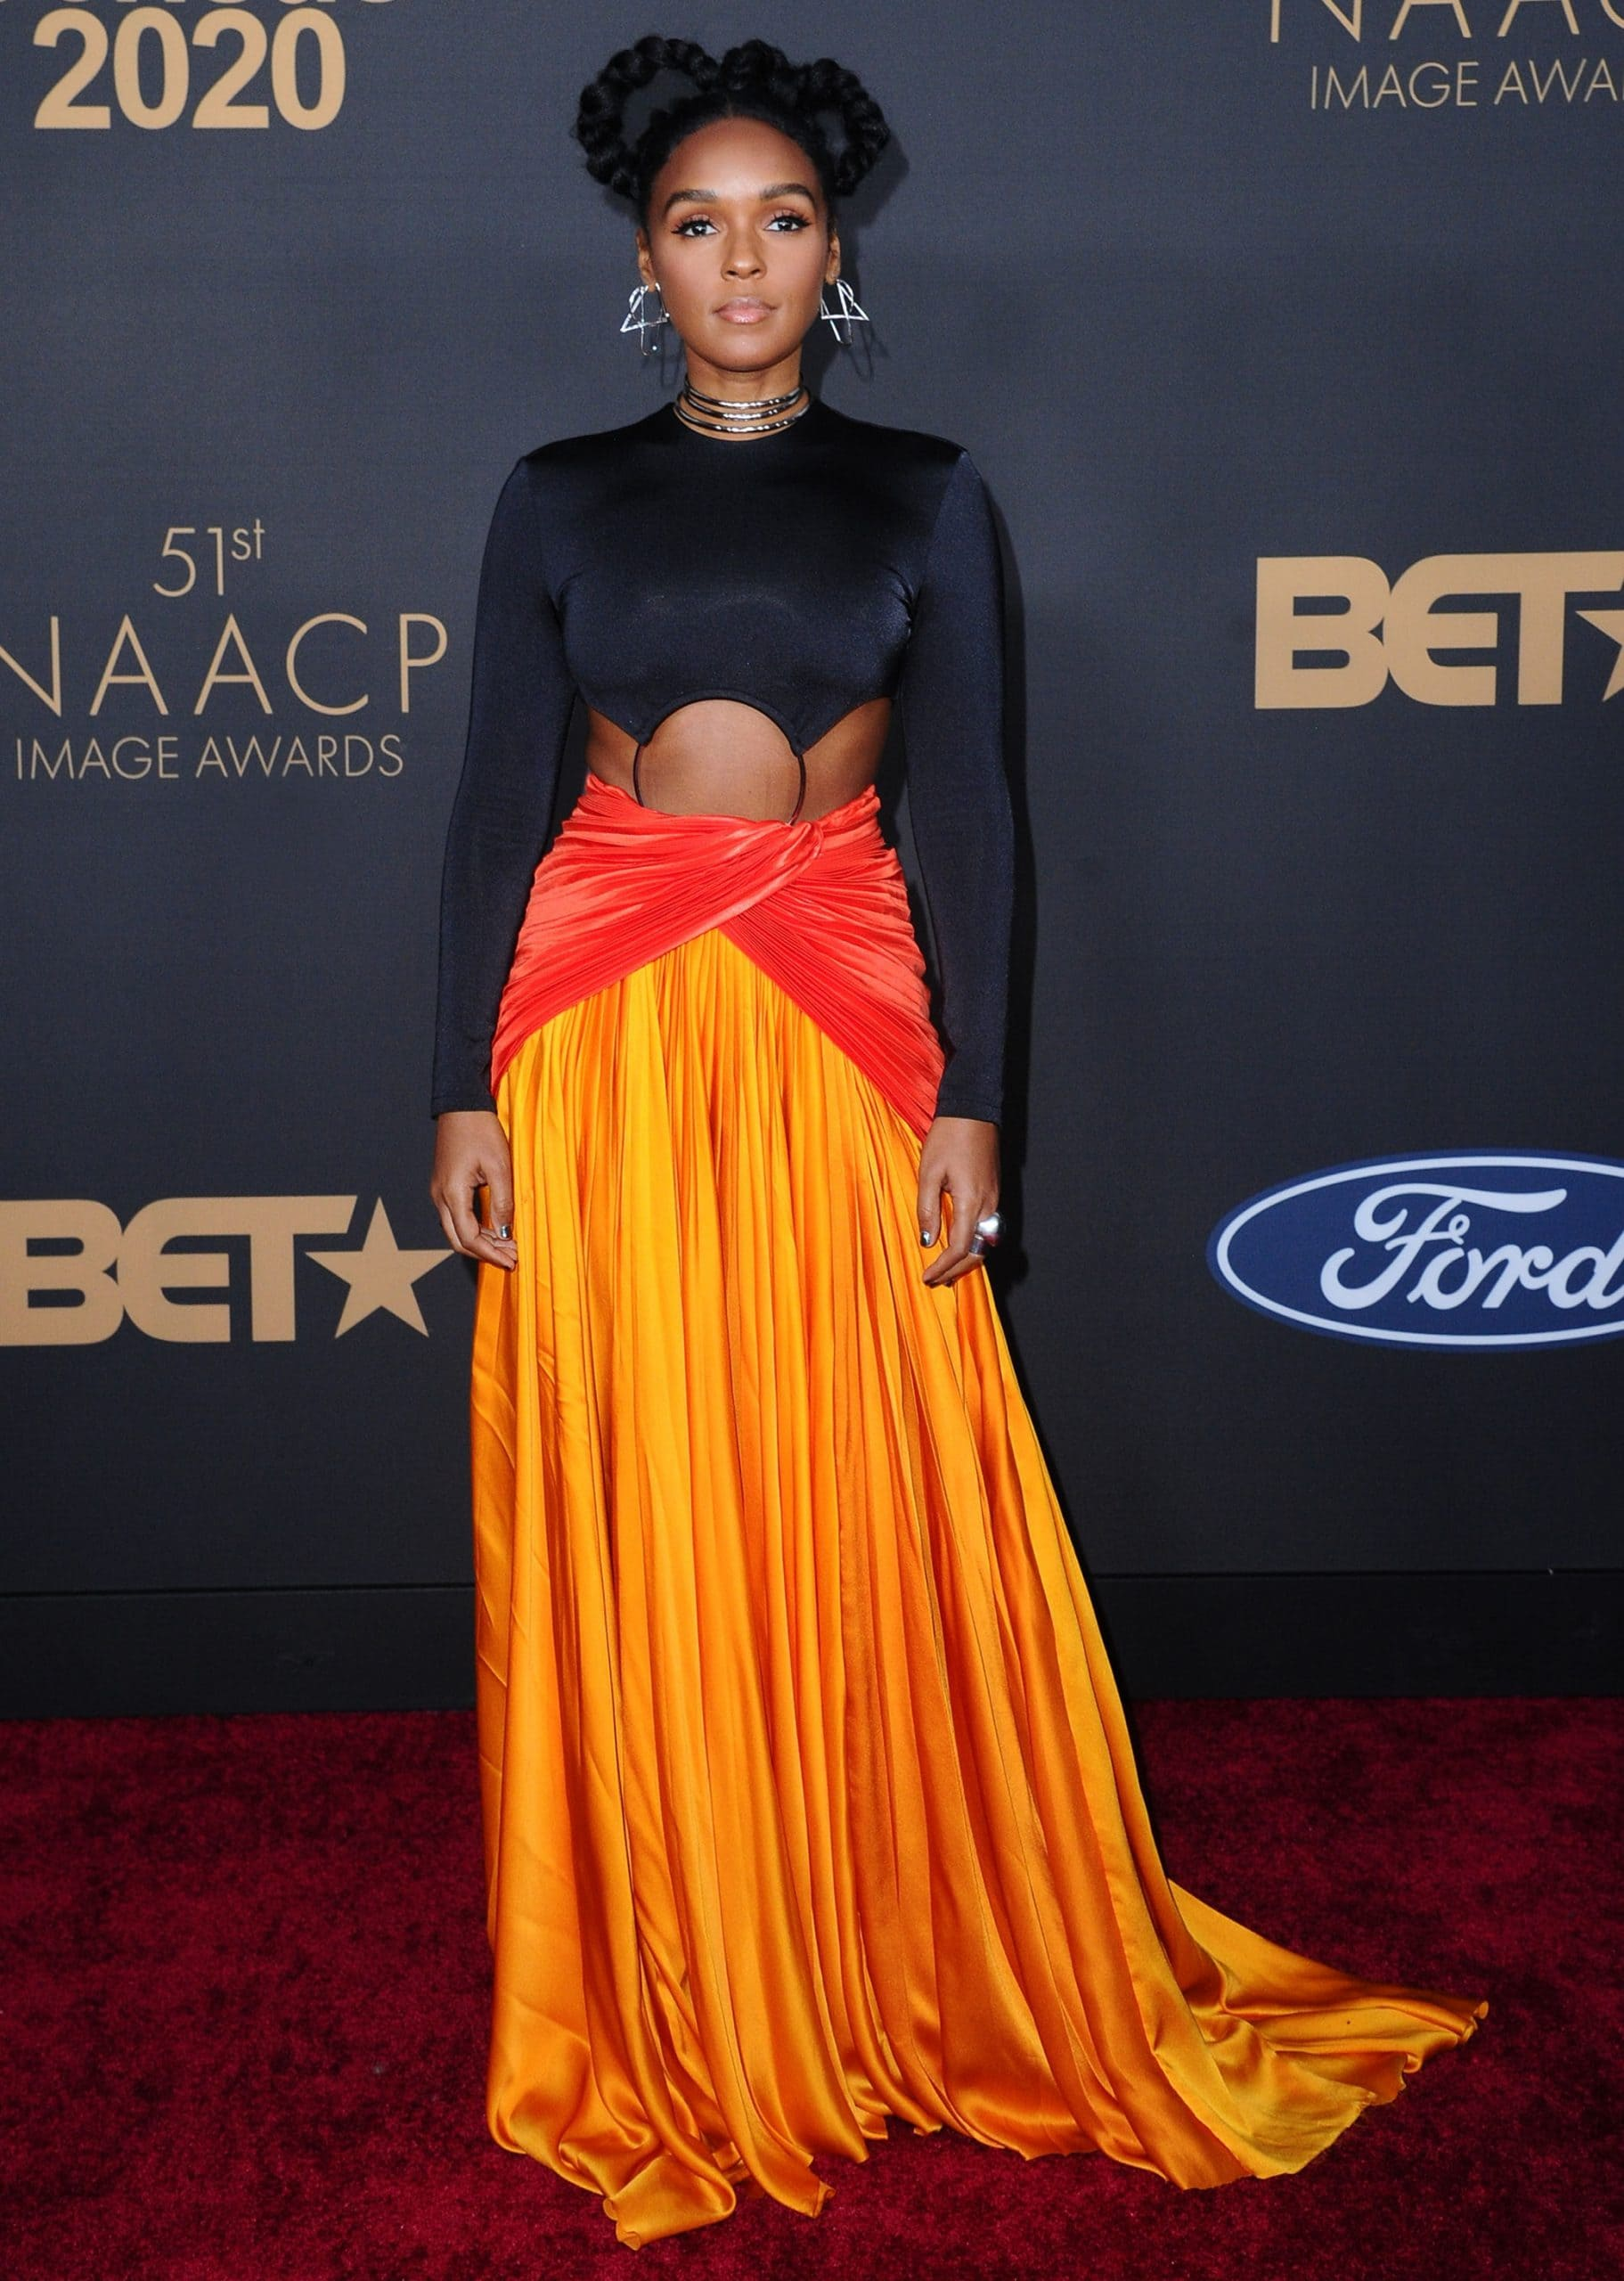 Janelle Monae wore two Balmain pieces with Alexis Bittar rhodium necklaces and a hairpiece at the 2020 NAACP Image Awards